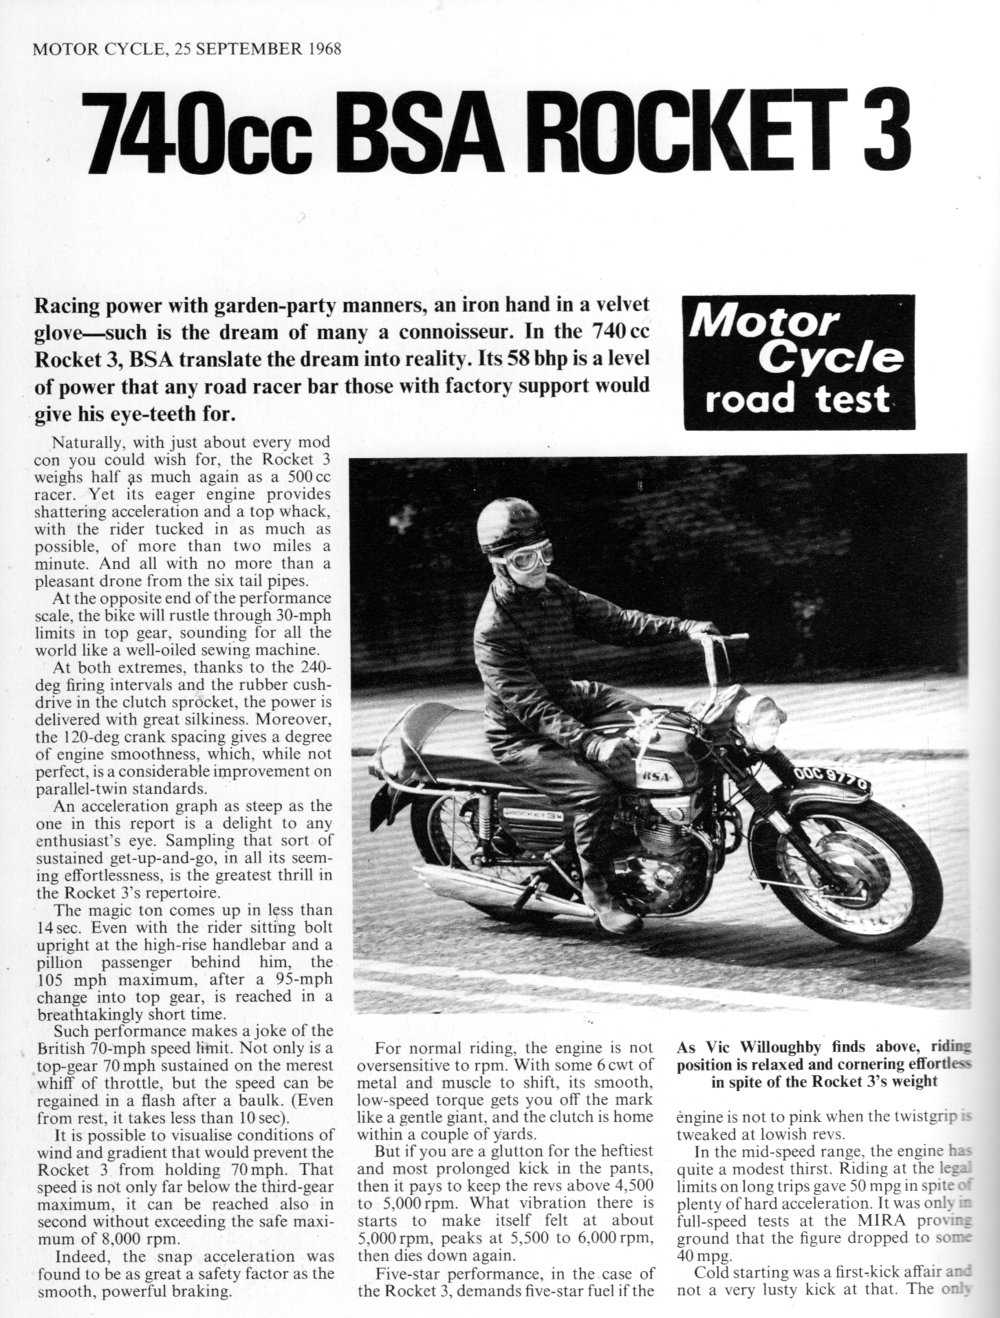 1968 BSA Rocket 3 740 road test 1.jpg